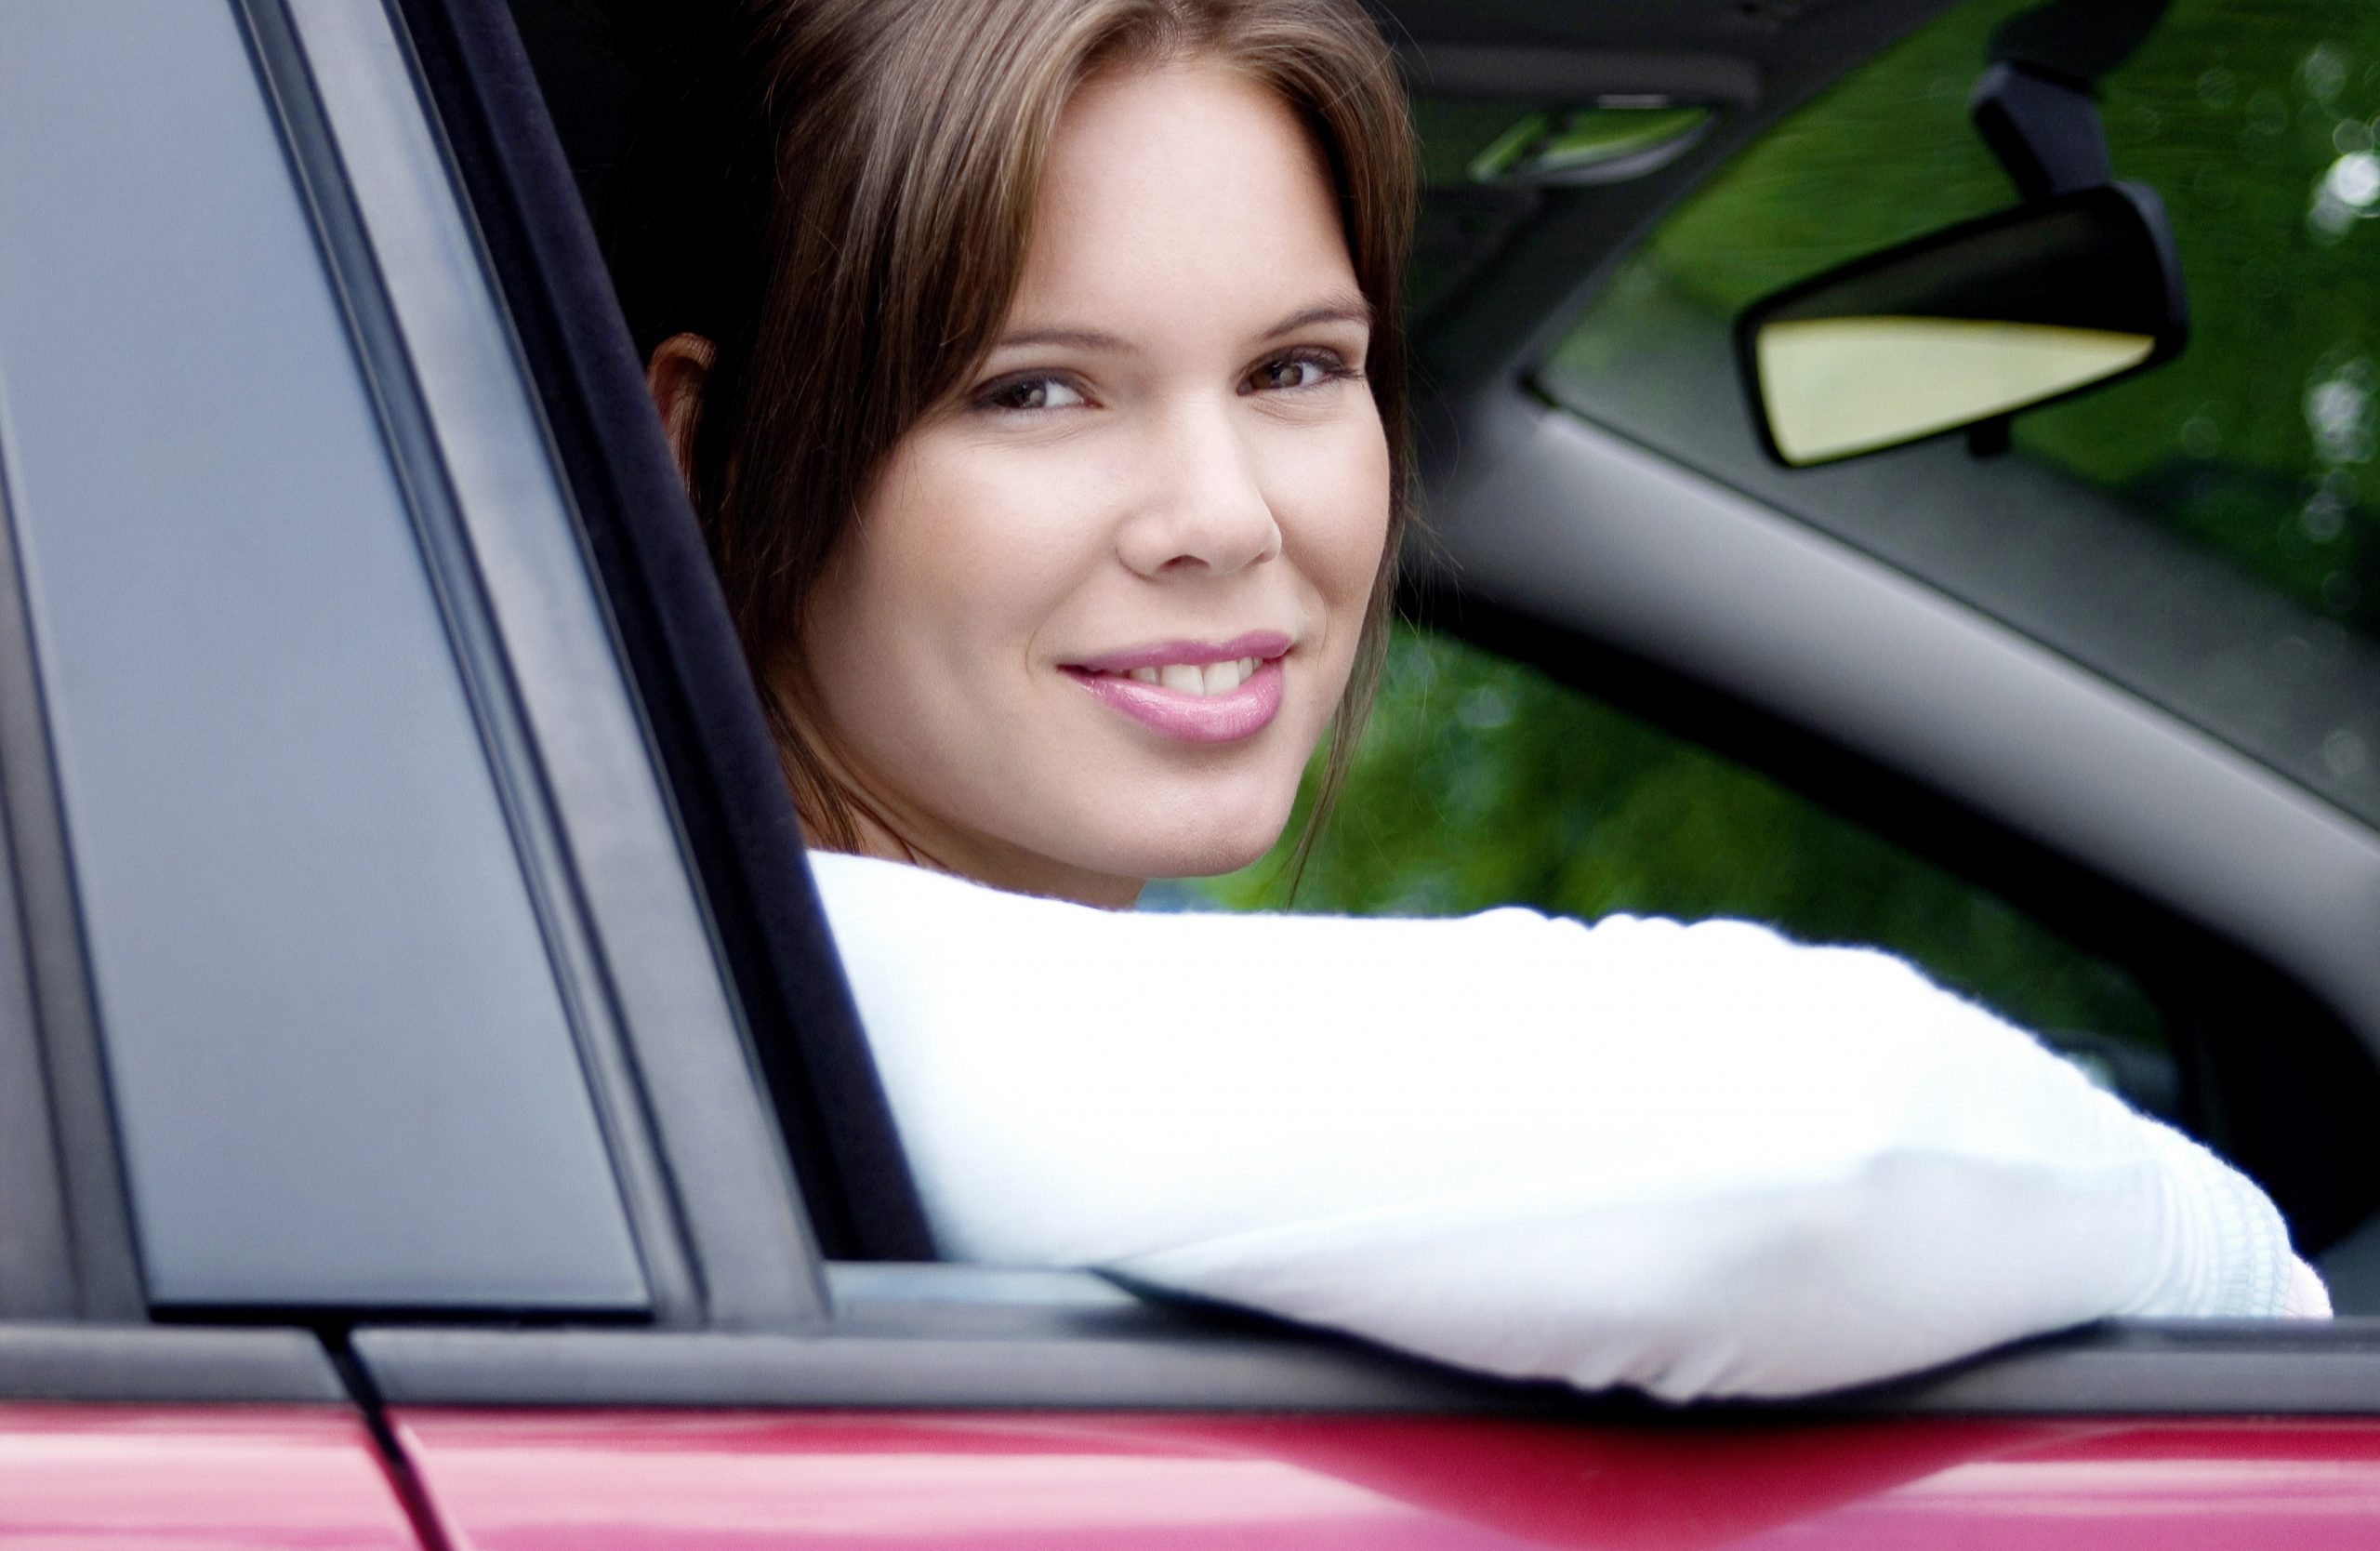 Multi-Car Insurance discounts Jacksonville IL happy driver photo